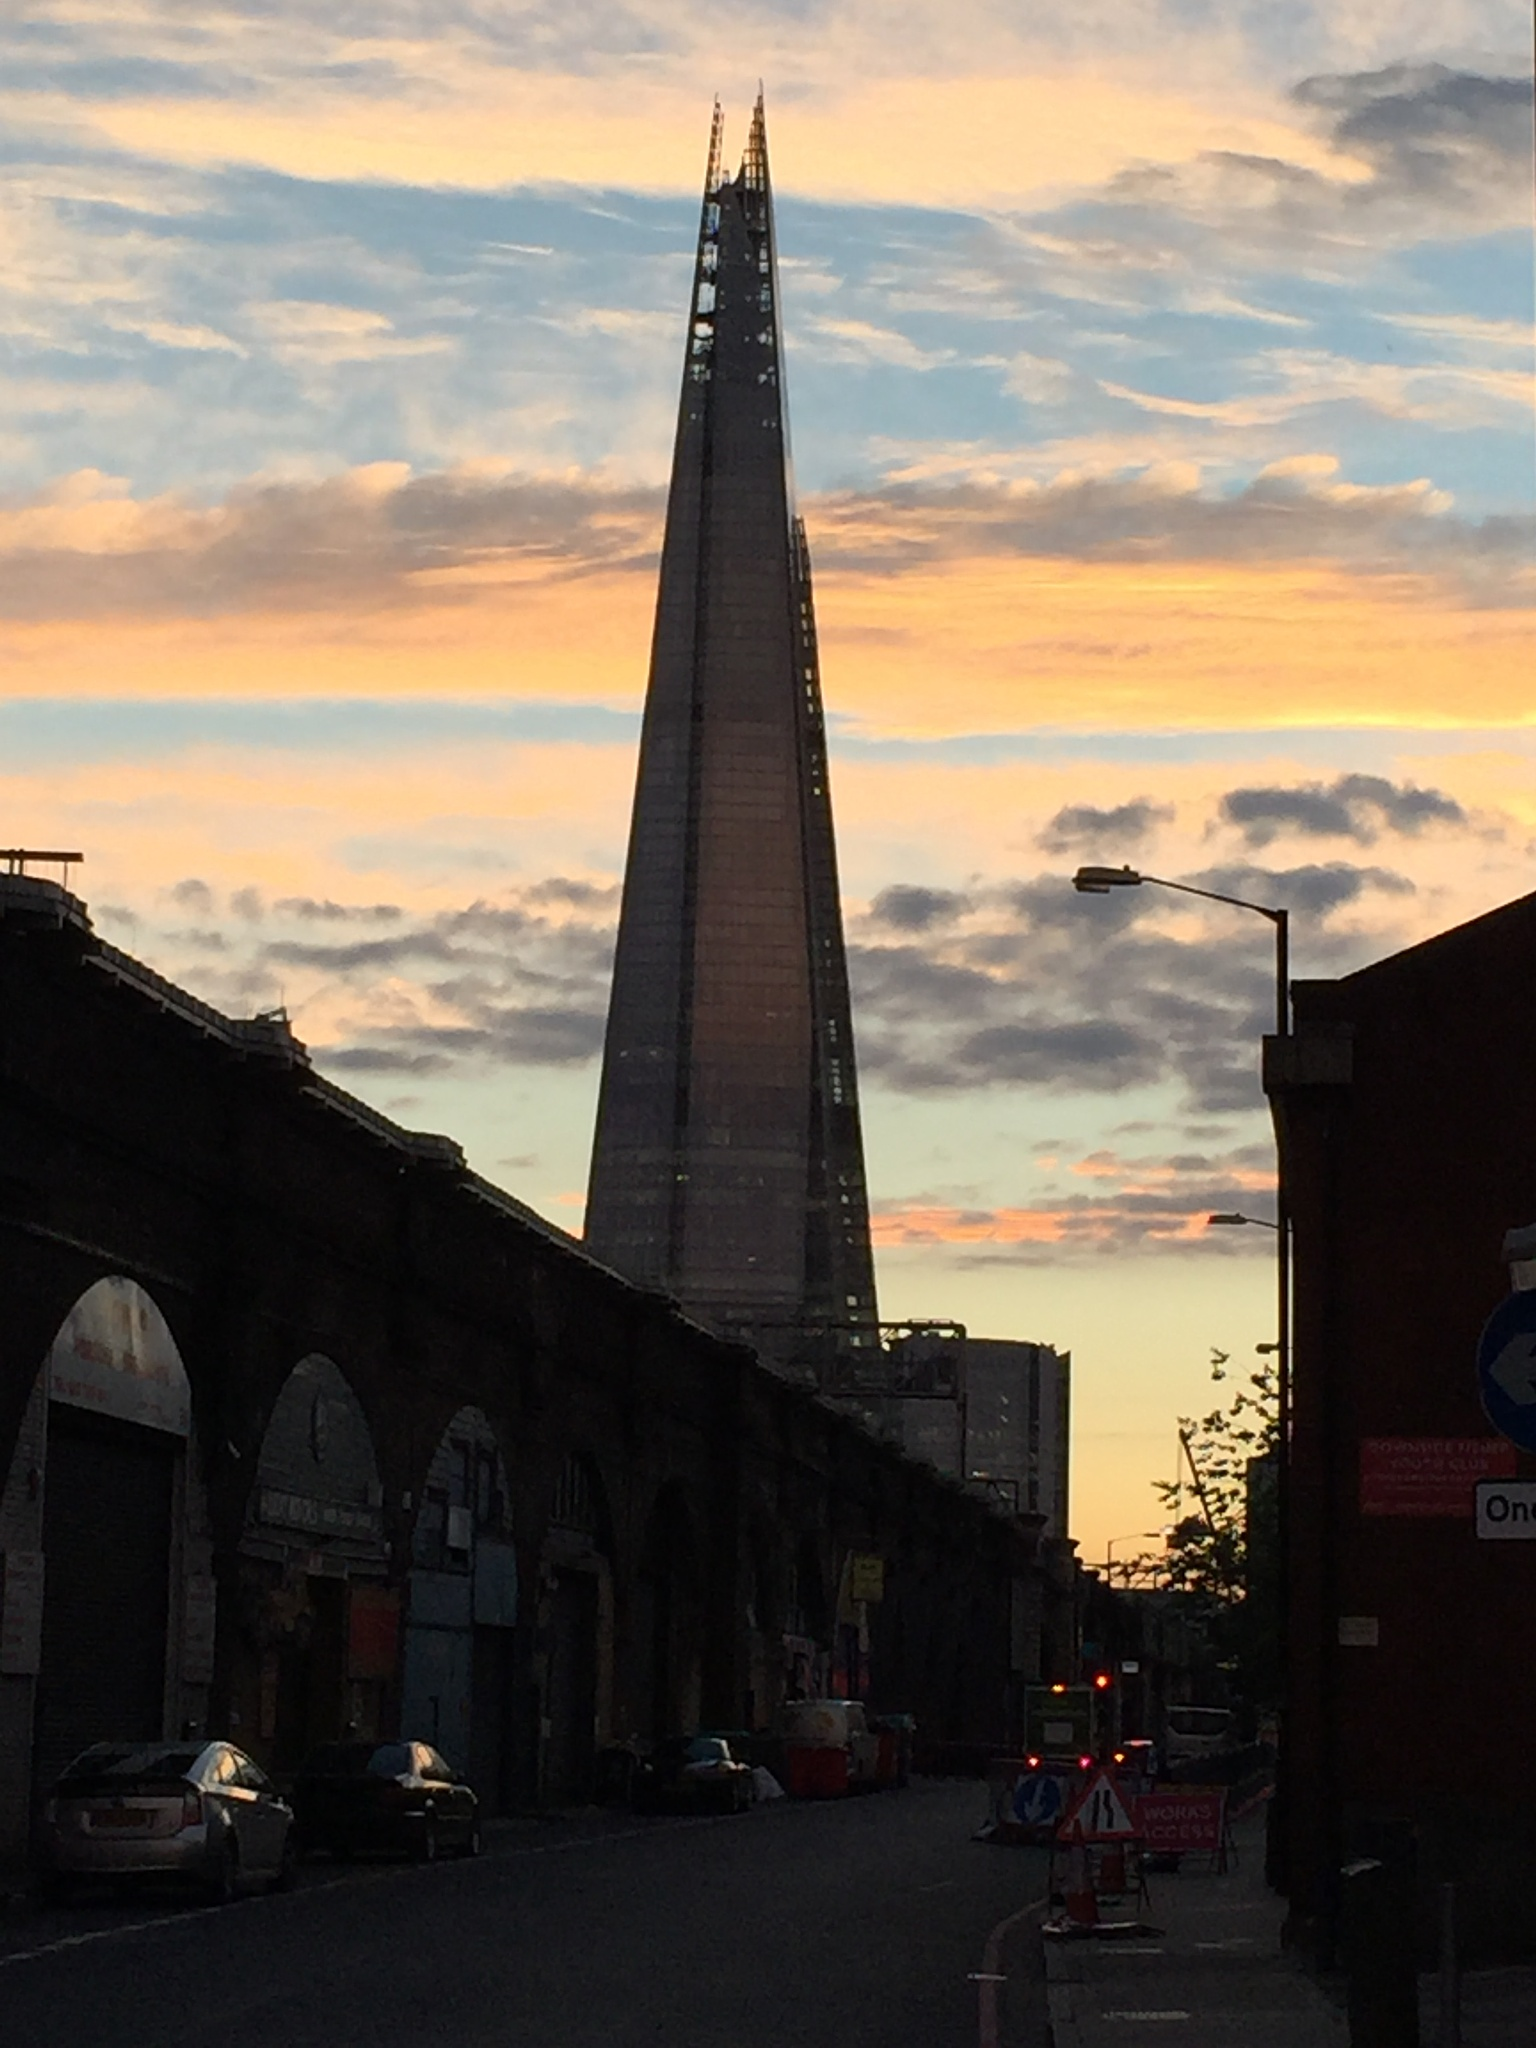 The Shard, London by Tinanina